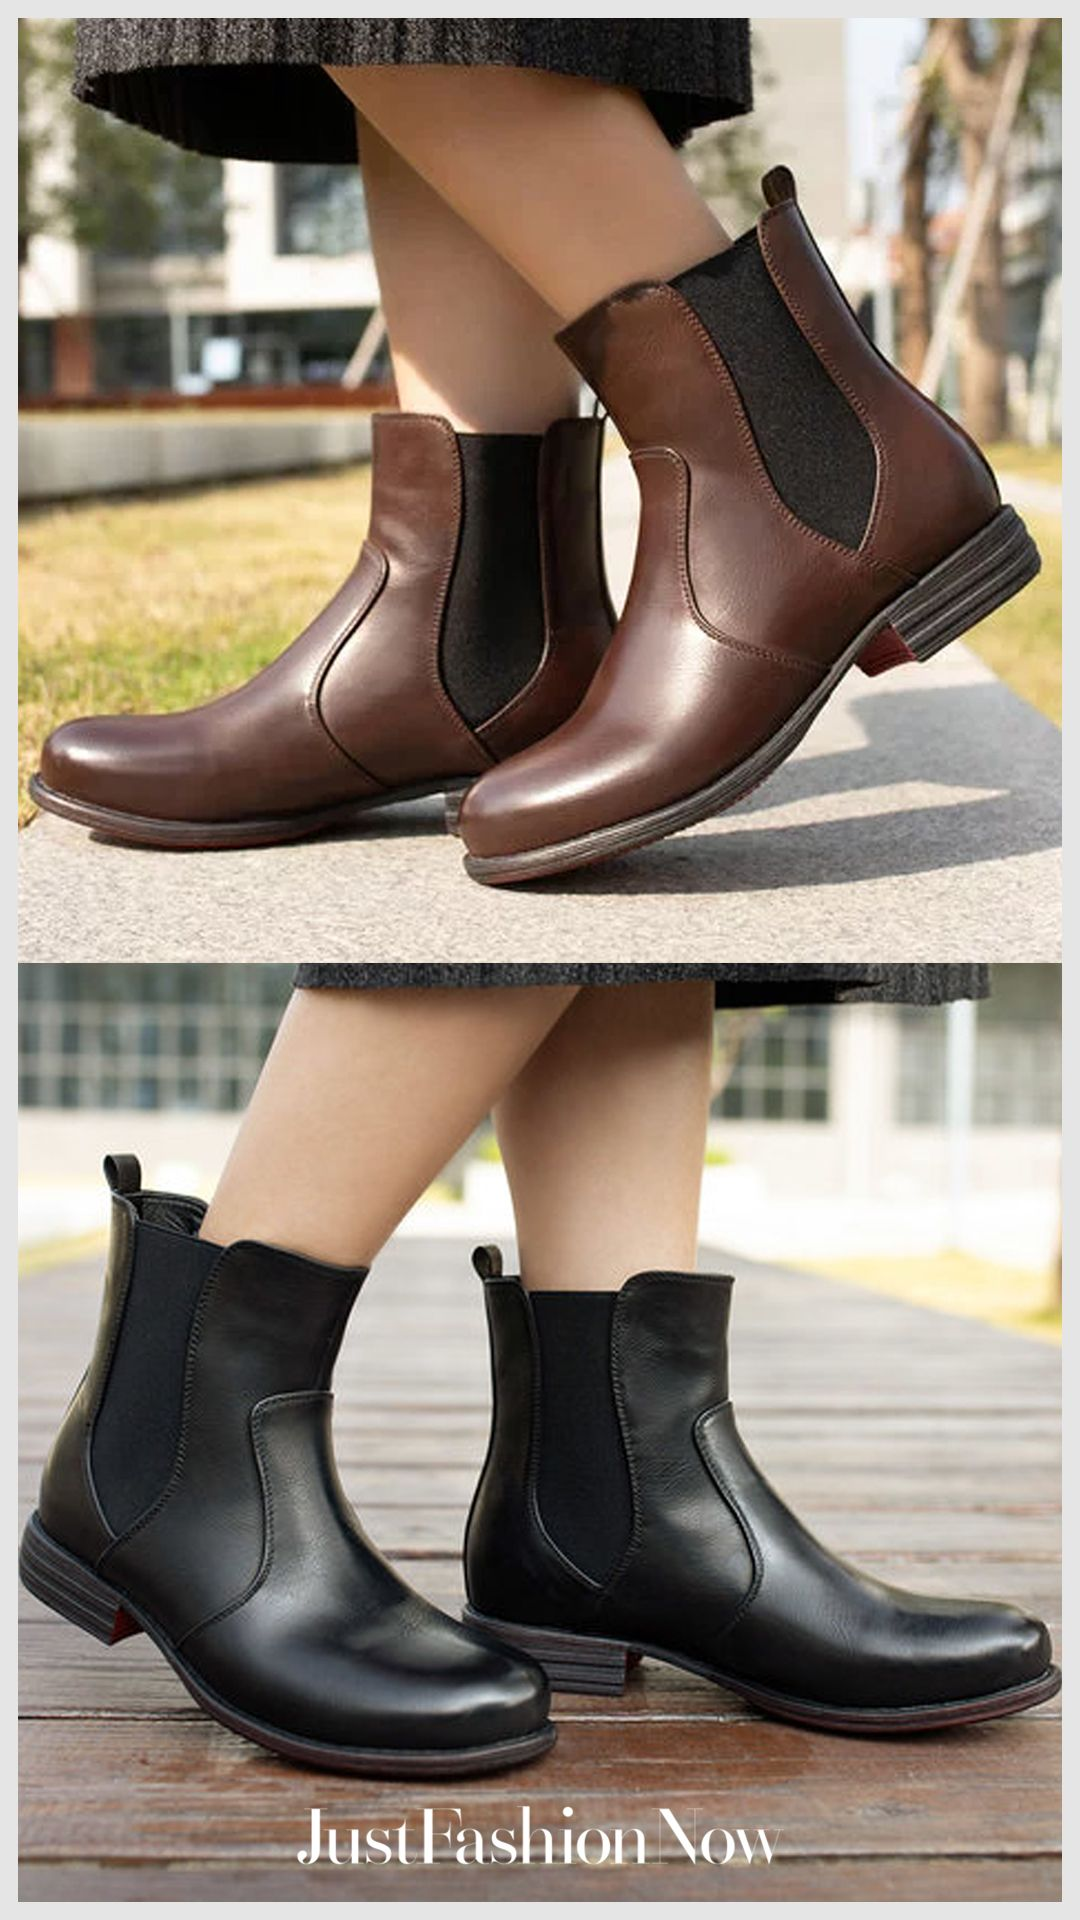 a2d05299346e Women s Vintage Low Heel Plus Size Ankle Booties Slip-on Short Chelsea Boots   women shoes  boots casual shoes  fall fashion   fall back to school shoes  ...